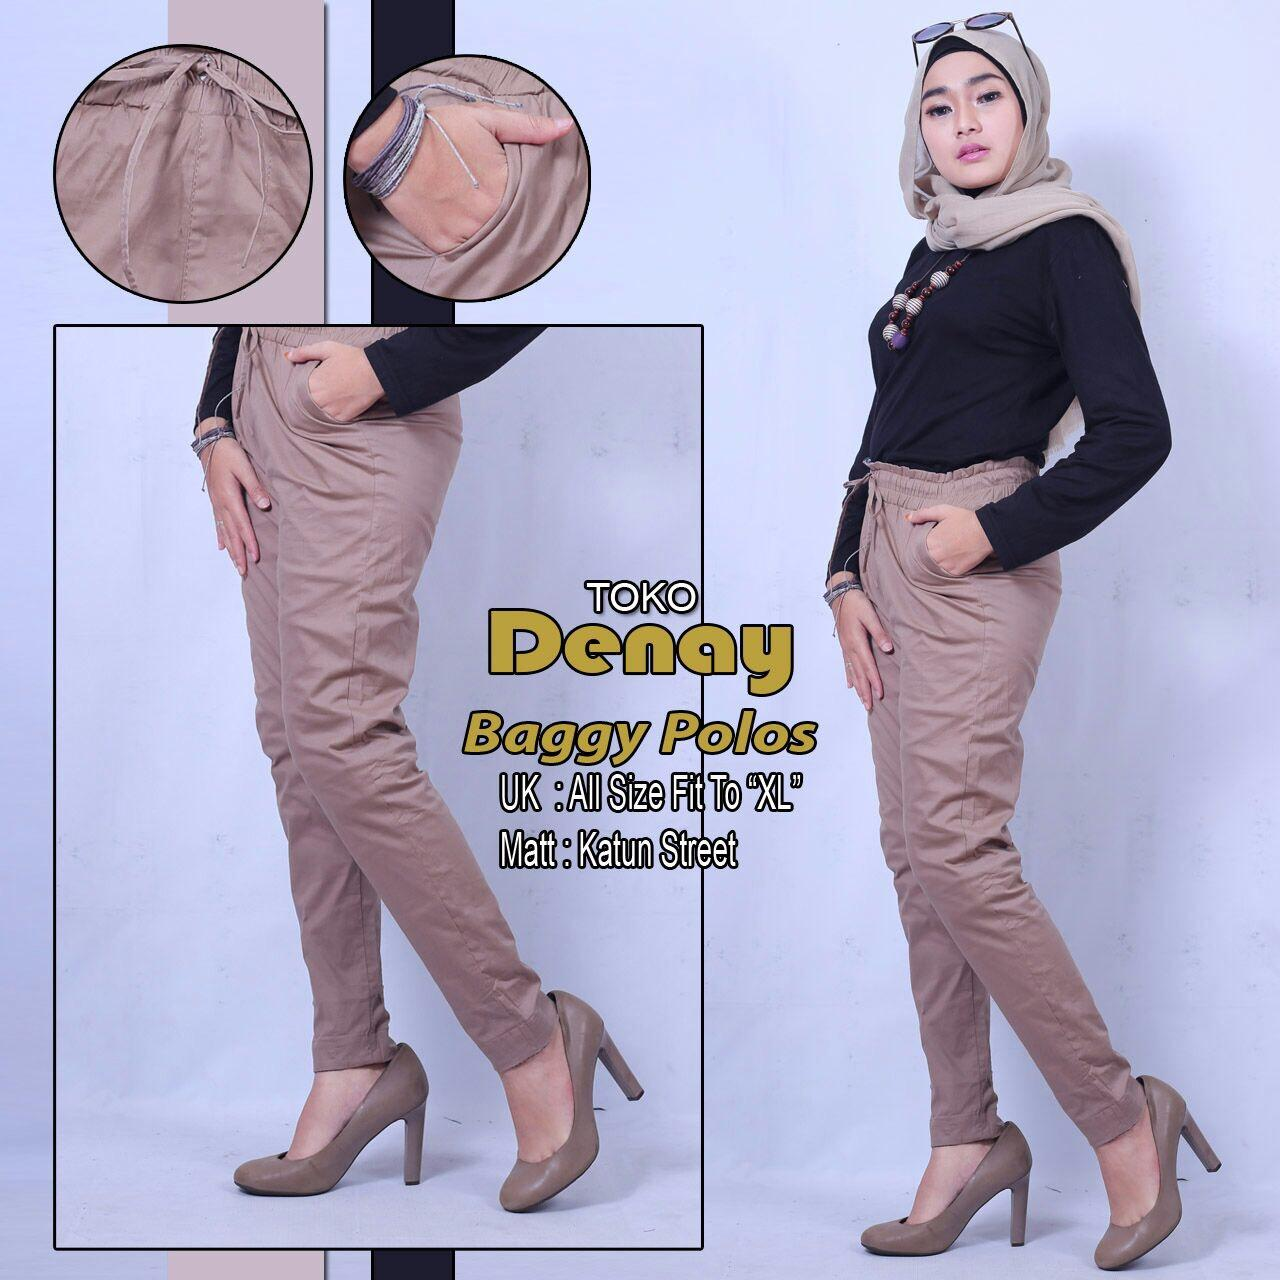 Celana Panjang Wanita Basic Premium Pants Mode Baggy Polos Cotton Strech Ori By Tokodenay